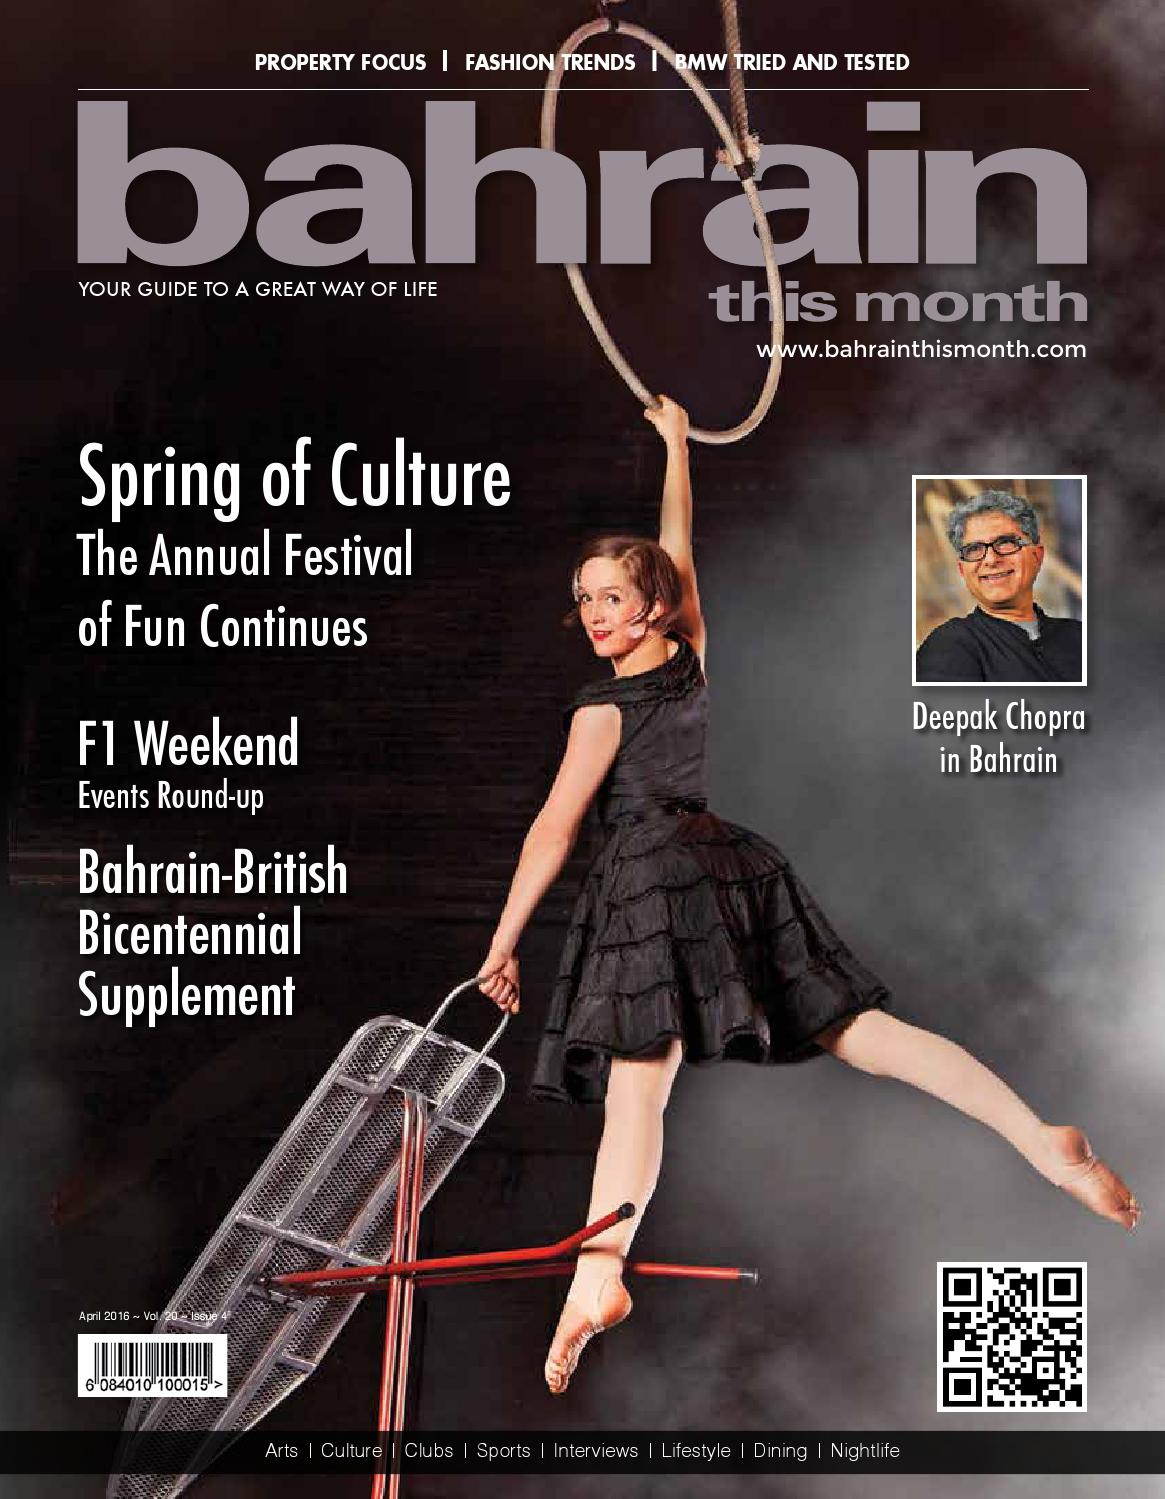 Bahrain This Month April 2016 By Red House Marketing Issuu Images, Photos, Reviews